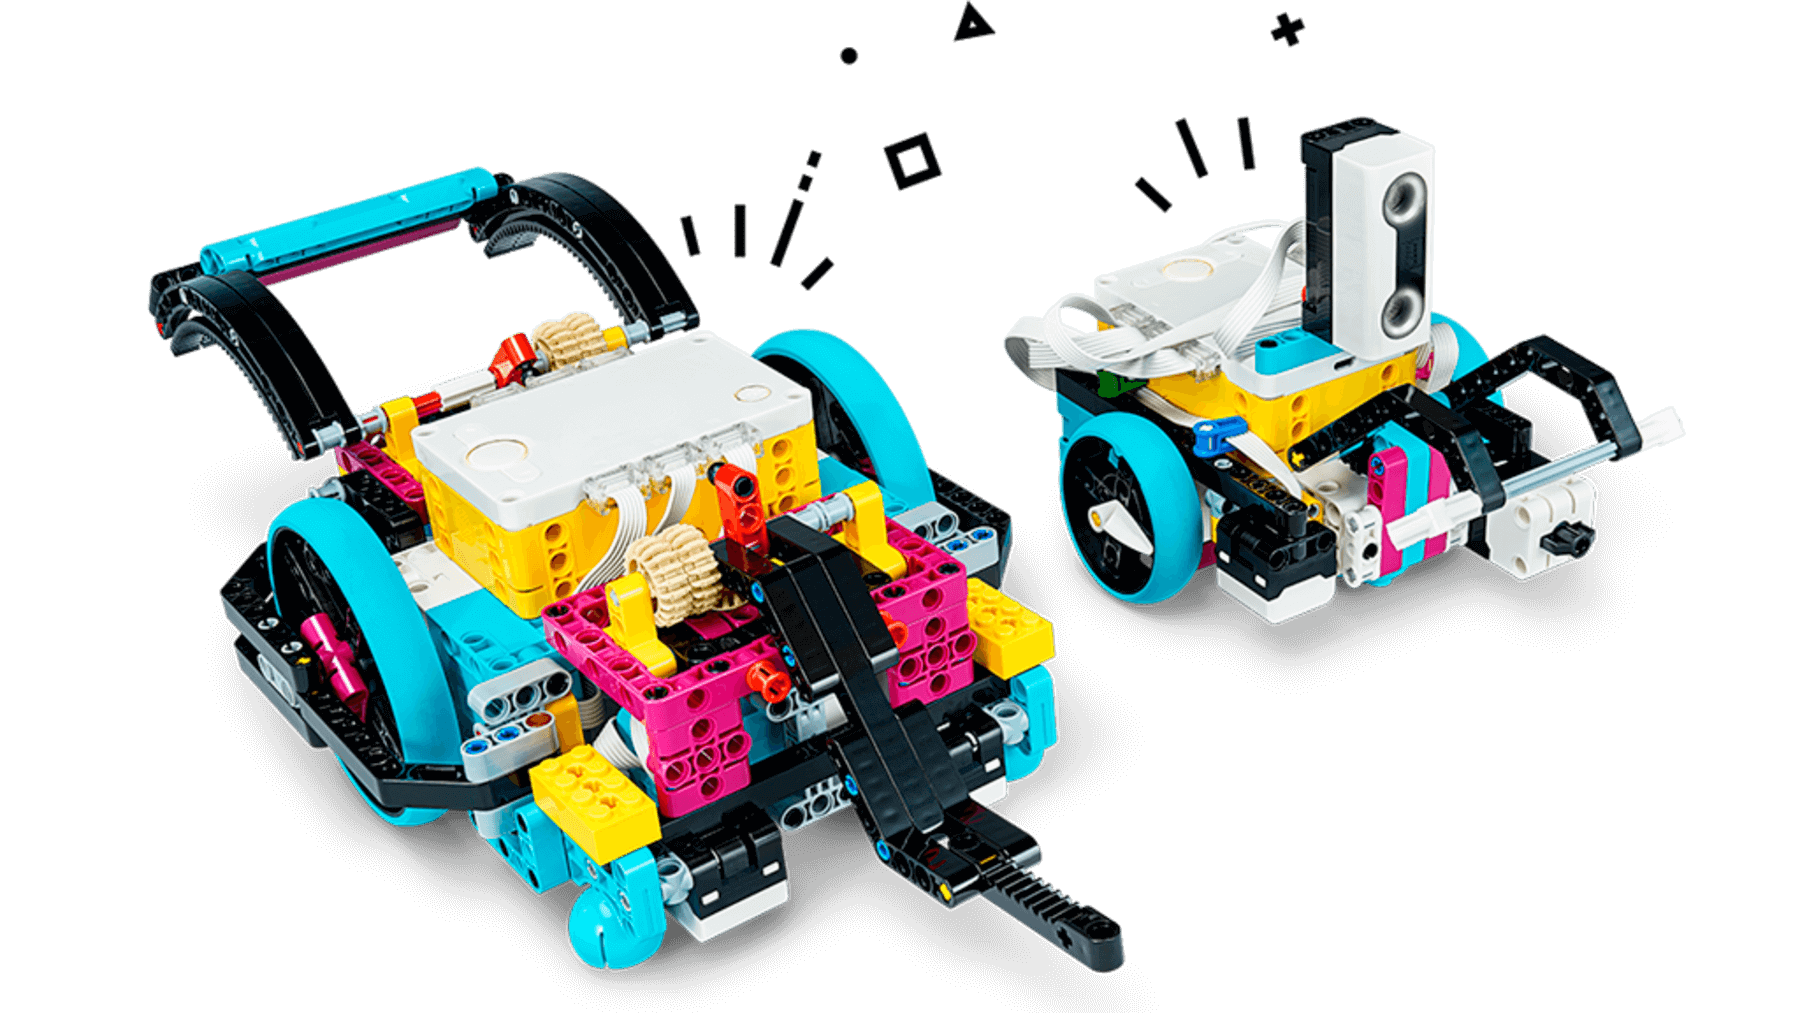 LEGO education_ SPIKE prime_45680_Erzänzung_competition_ready_assemblinganadvanceddrivingbase_08_withdoodles